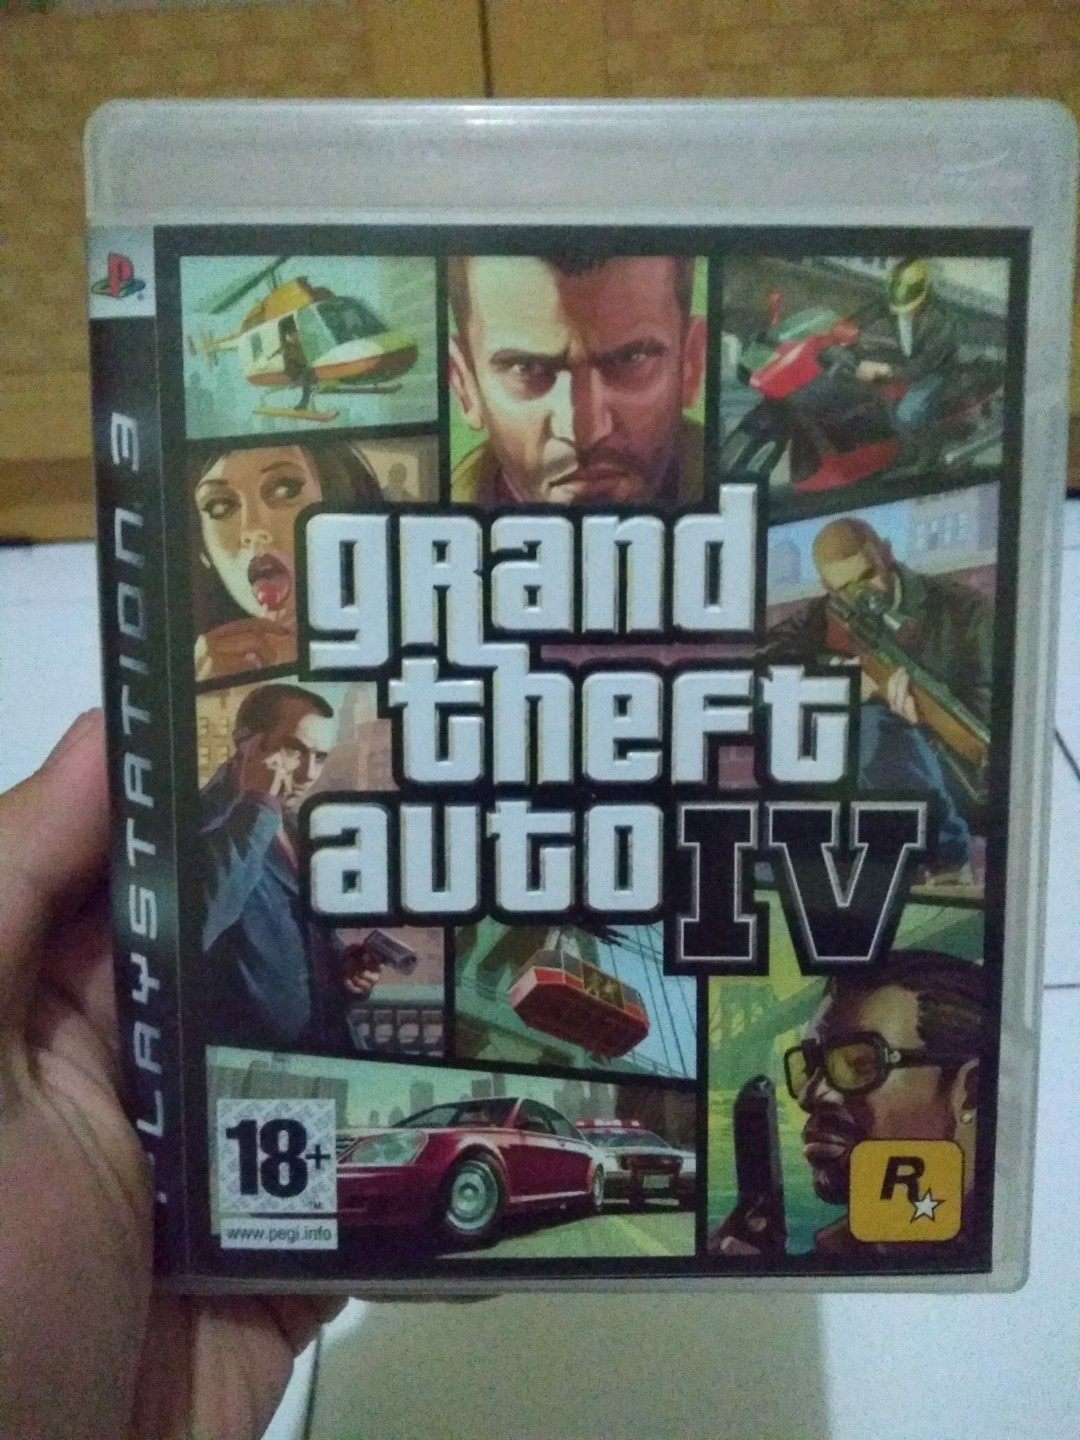 Bluray Disc Gta Iv Ps3 Video Game Di Carousell Kaset Ps4 Bd The Witcher 3 Wild Hunt Of Year